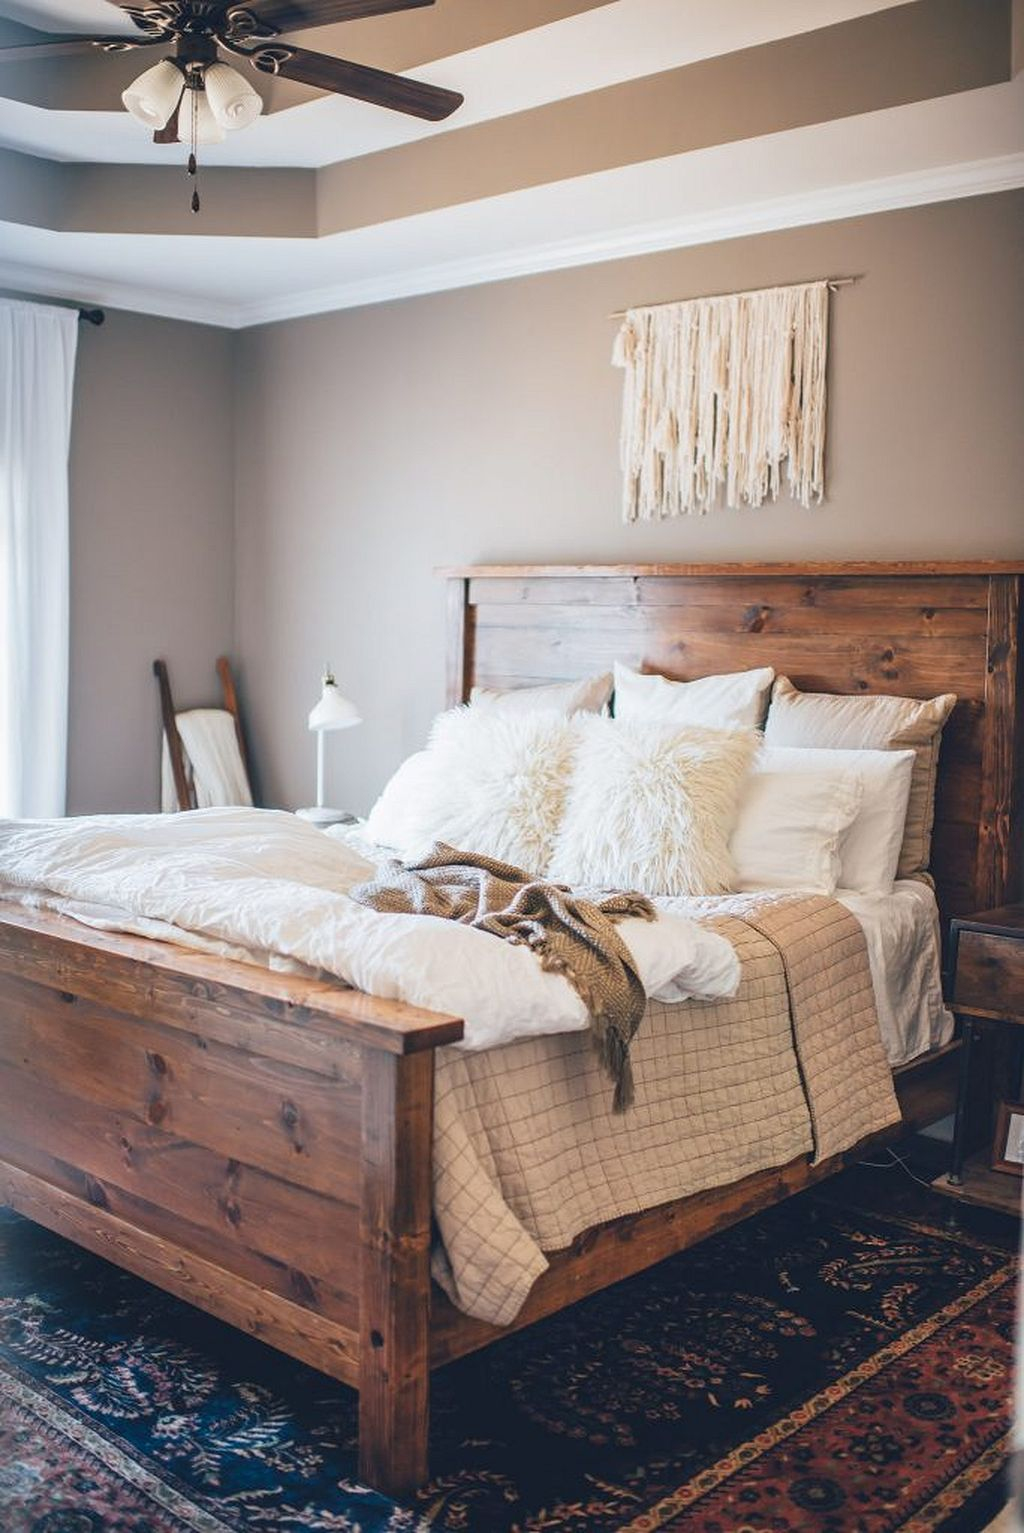 44 Best Rustic Bedroom Decor Ideas On A Budget   Coo Architecture